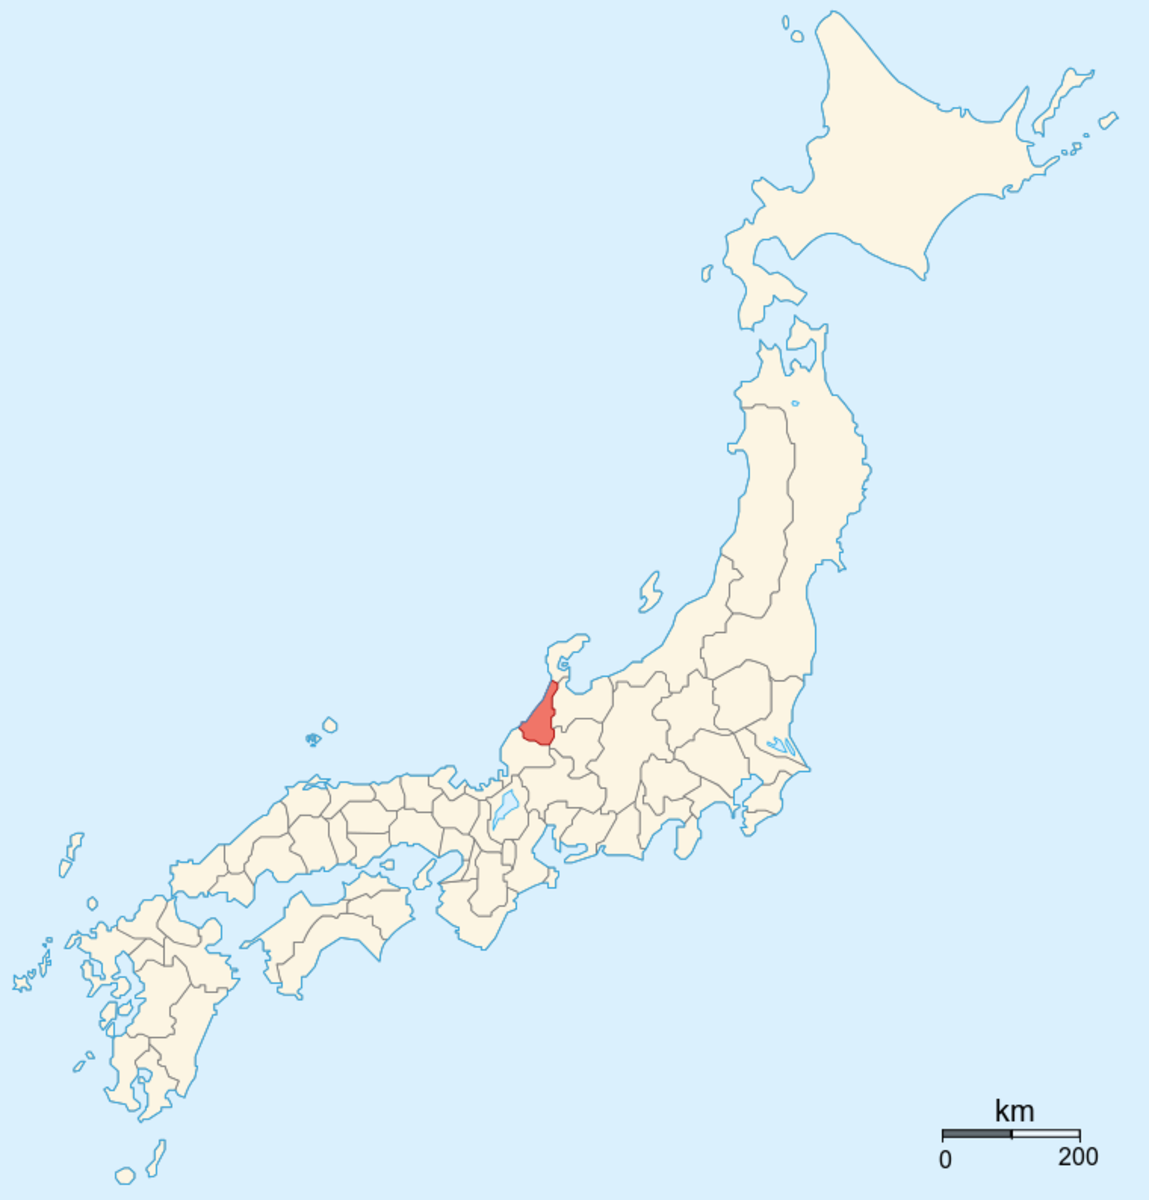 Kaga Province, the descendent of the Kaga Domain, location in Japan.